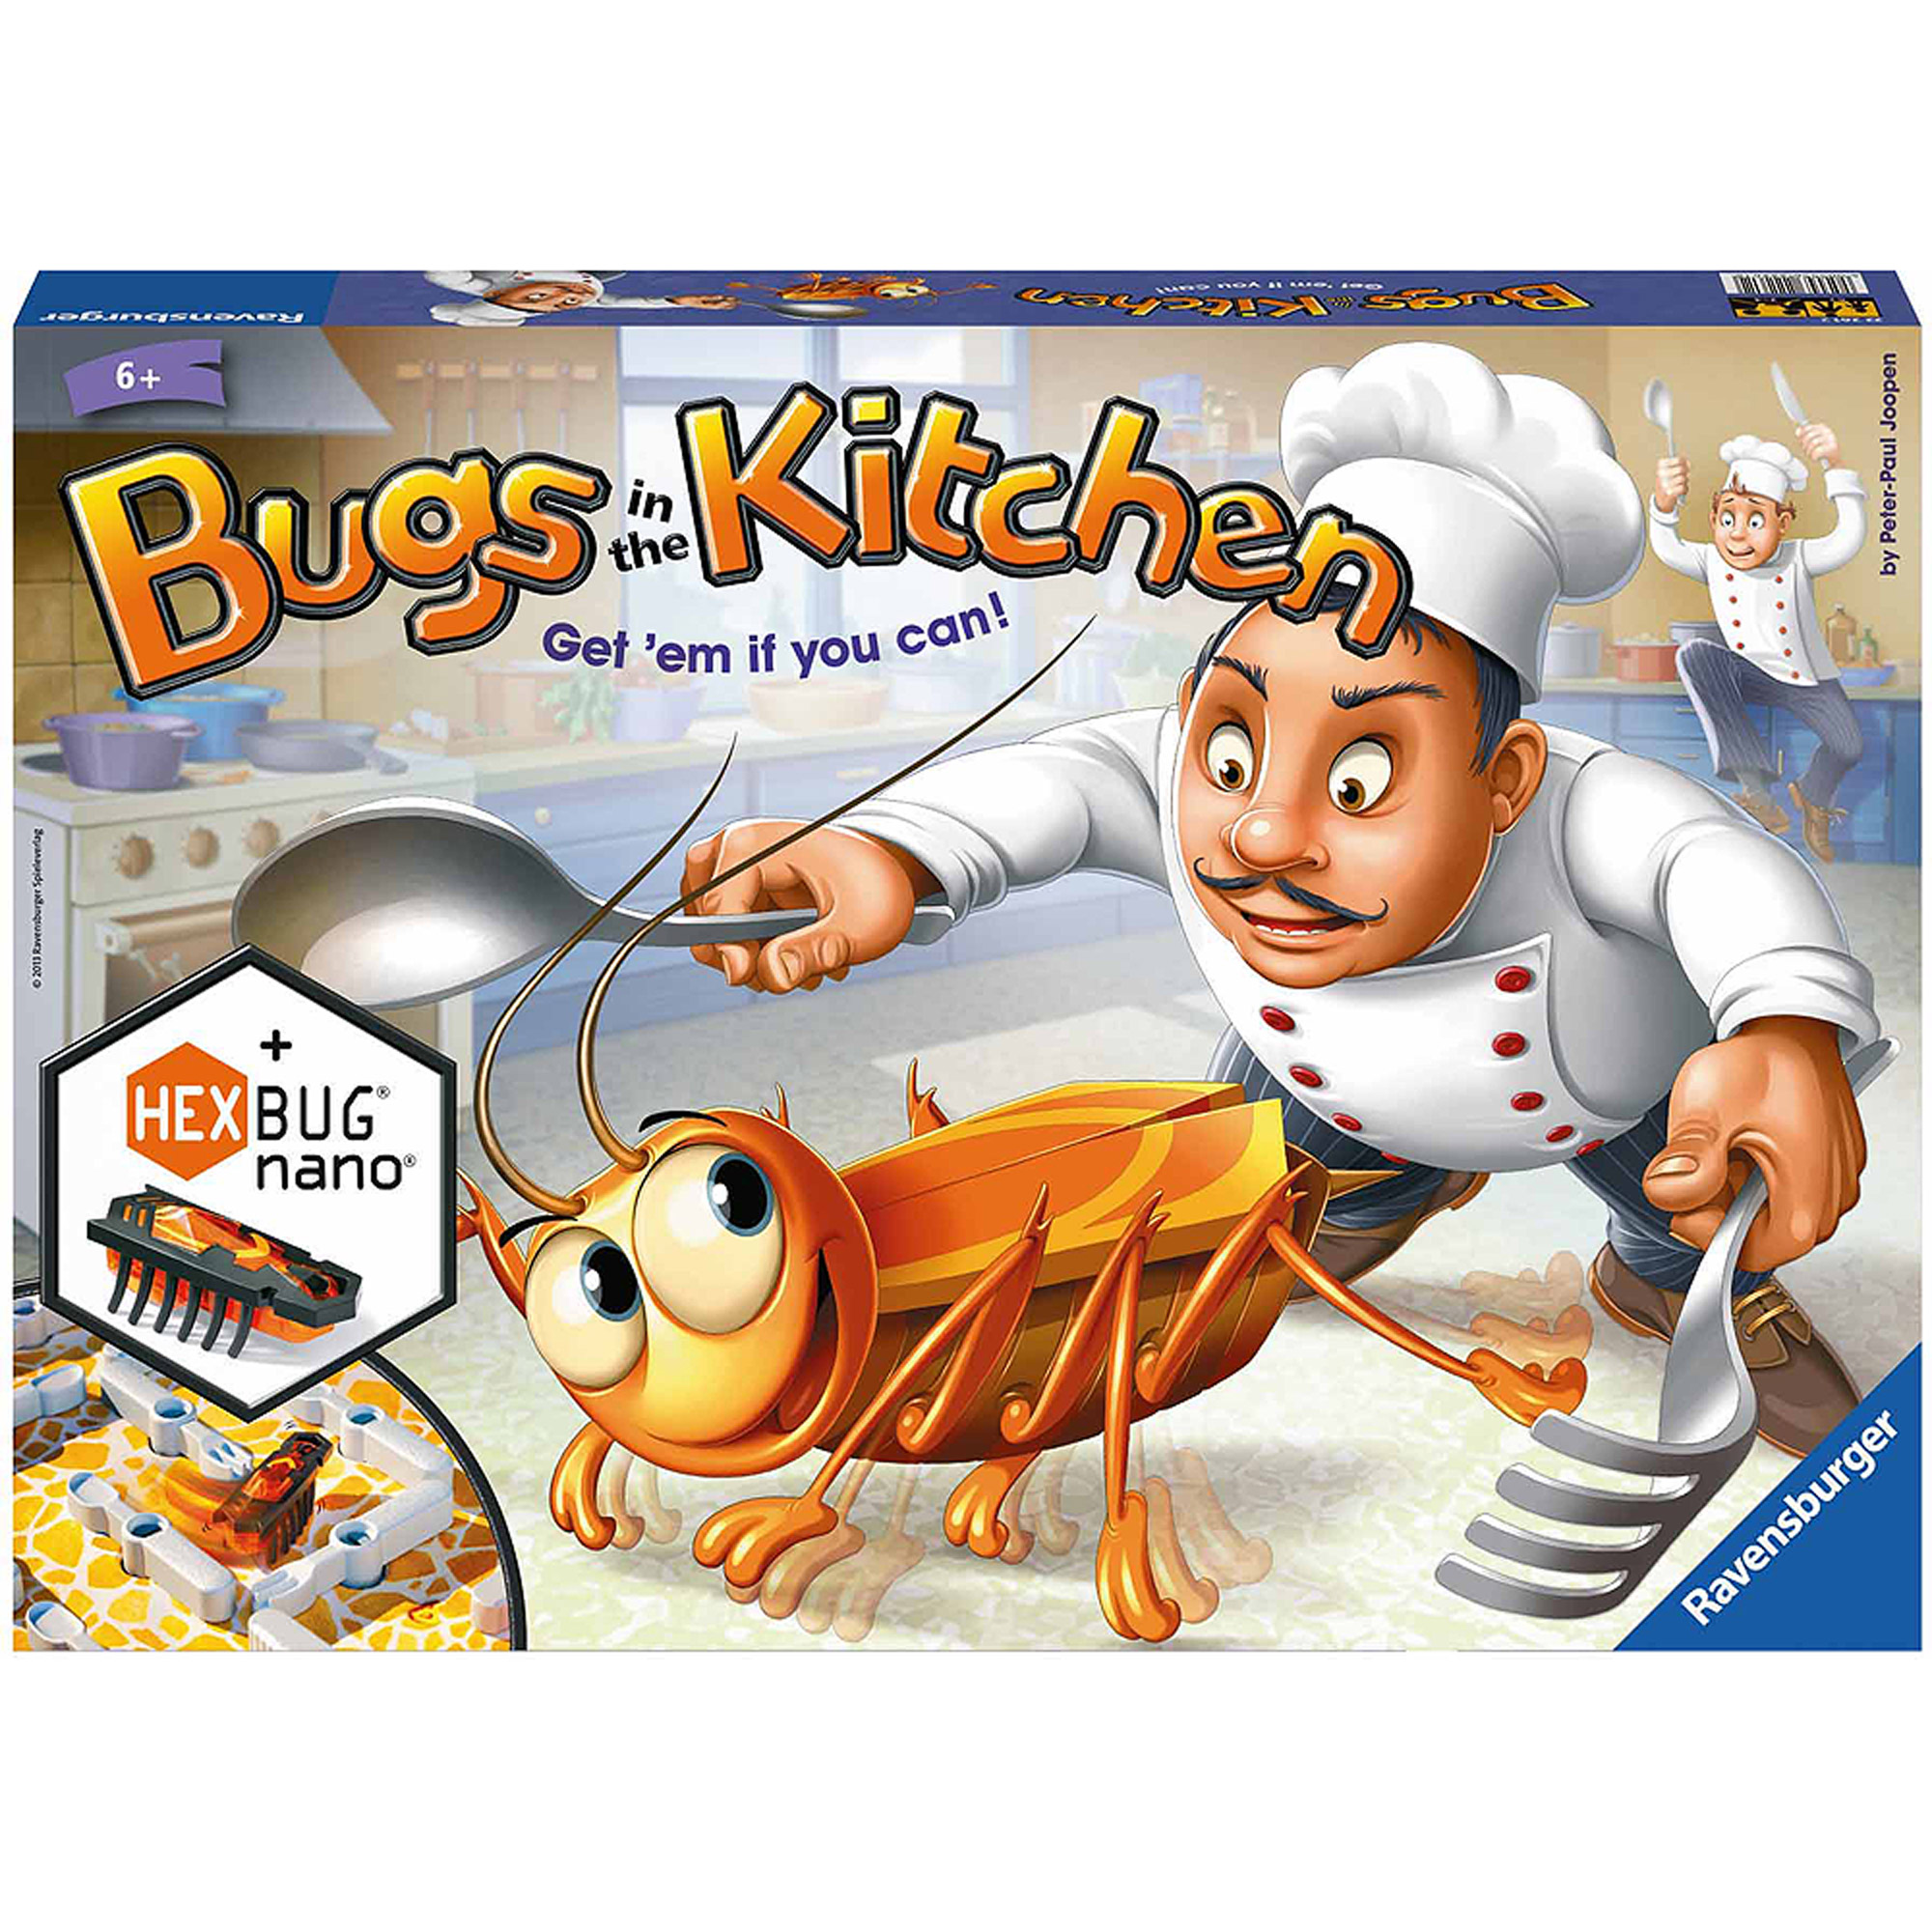 Ravensburger Bugs in the Kitchen by Ravensburger